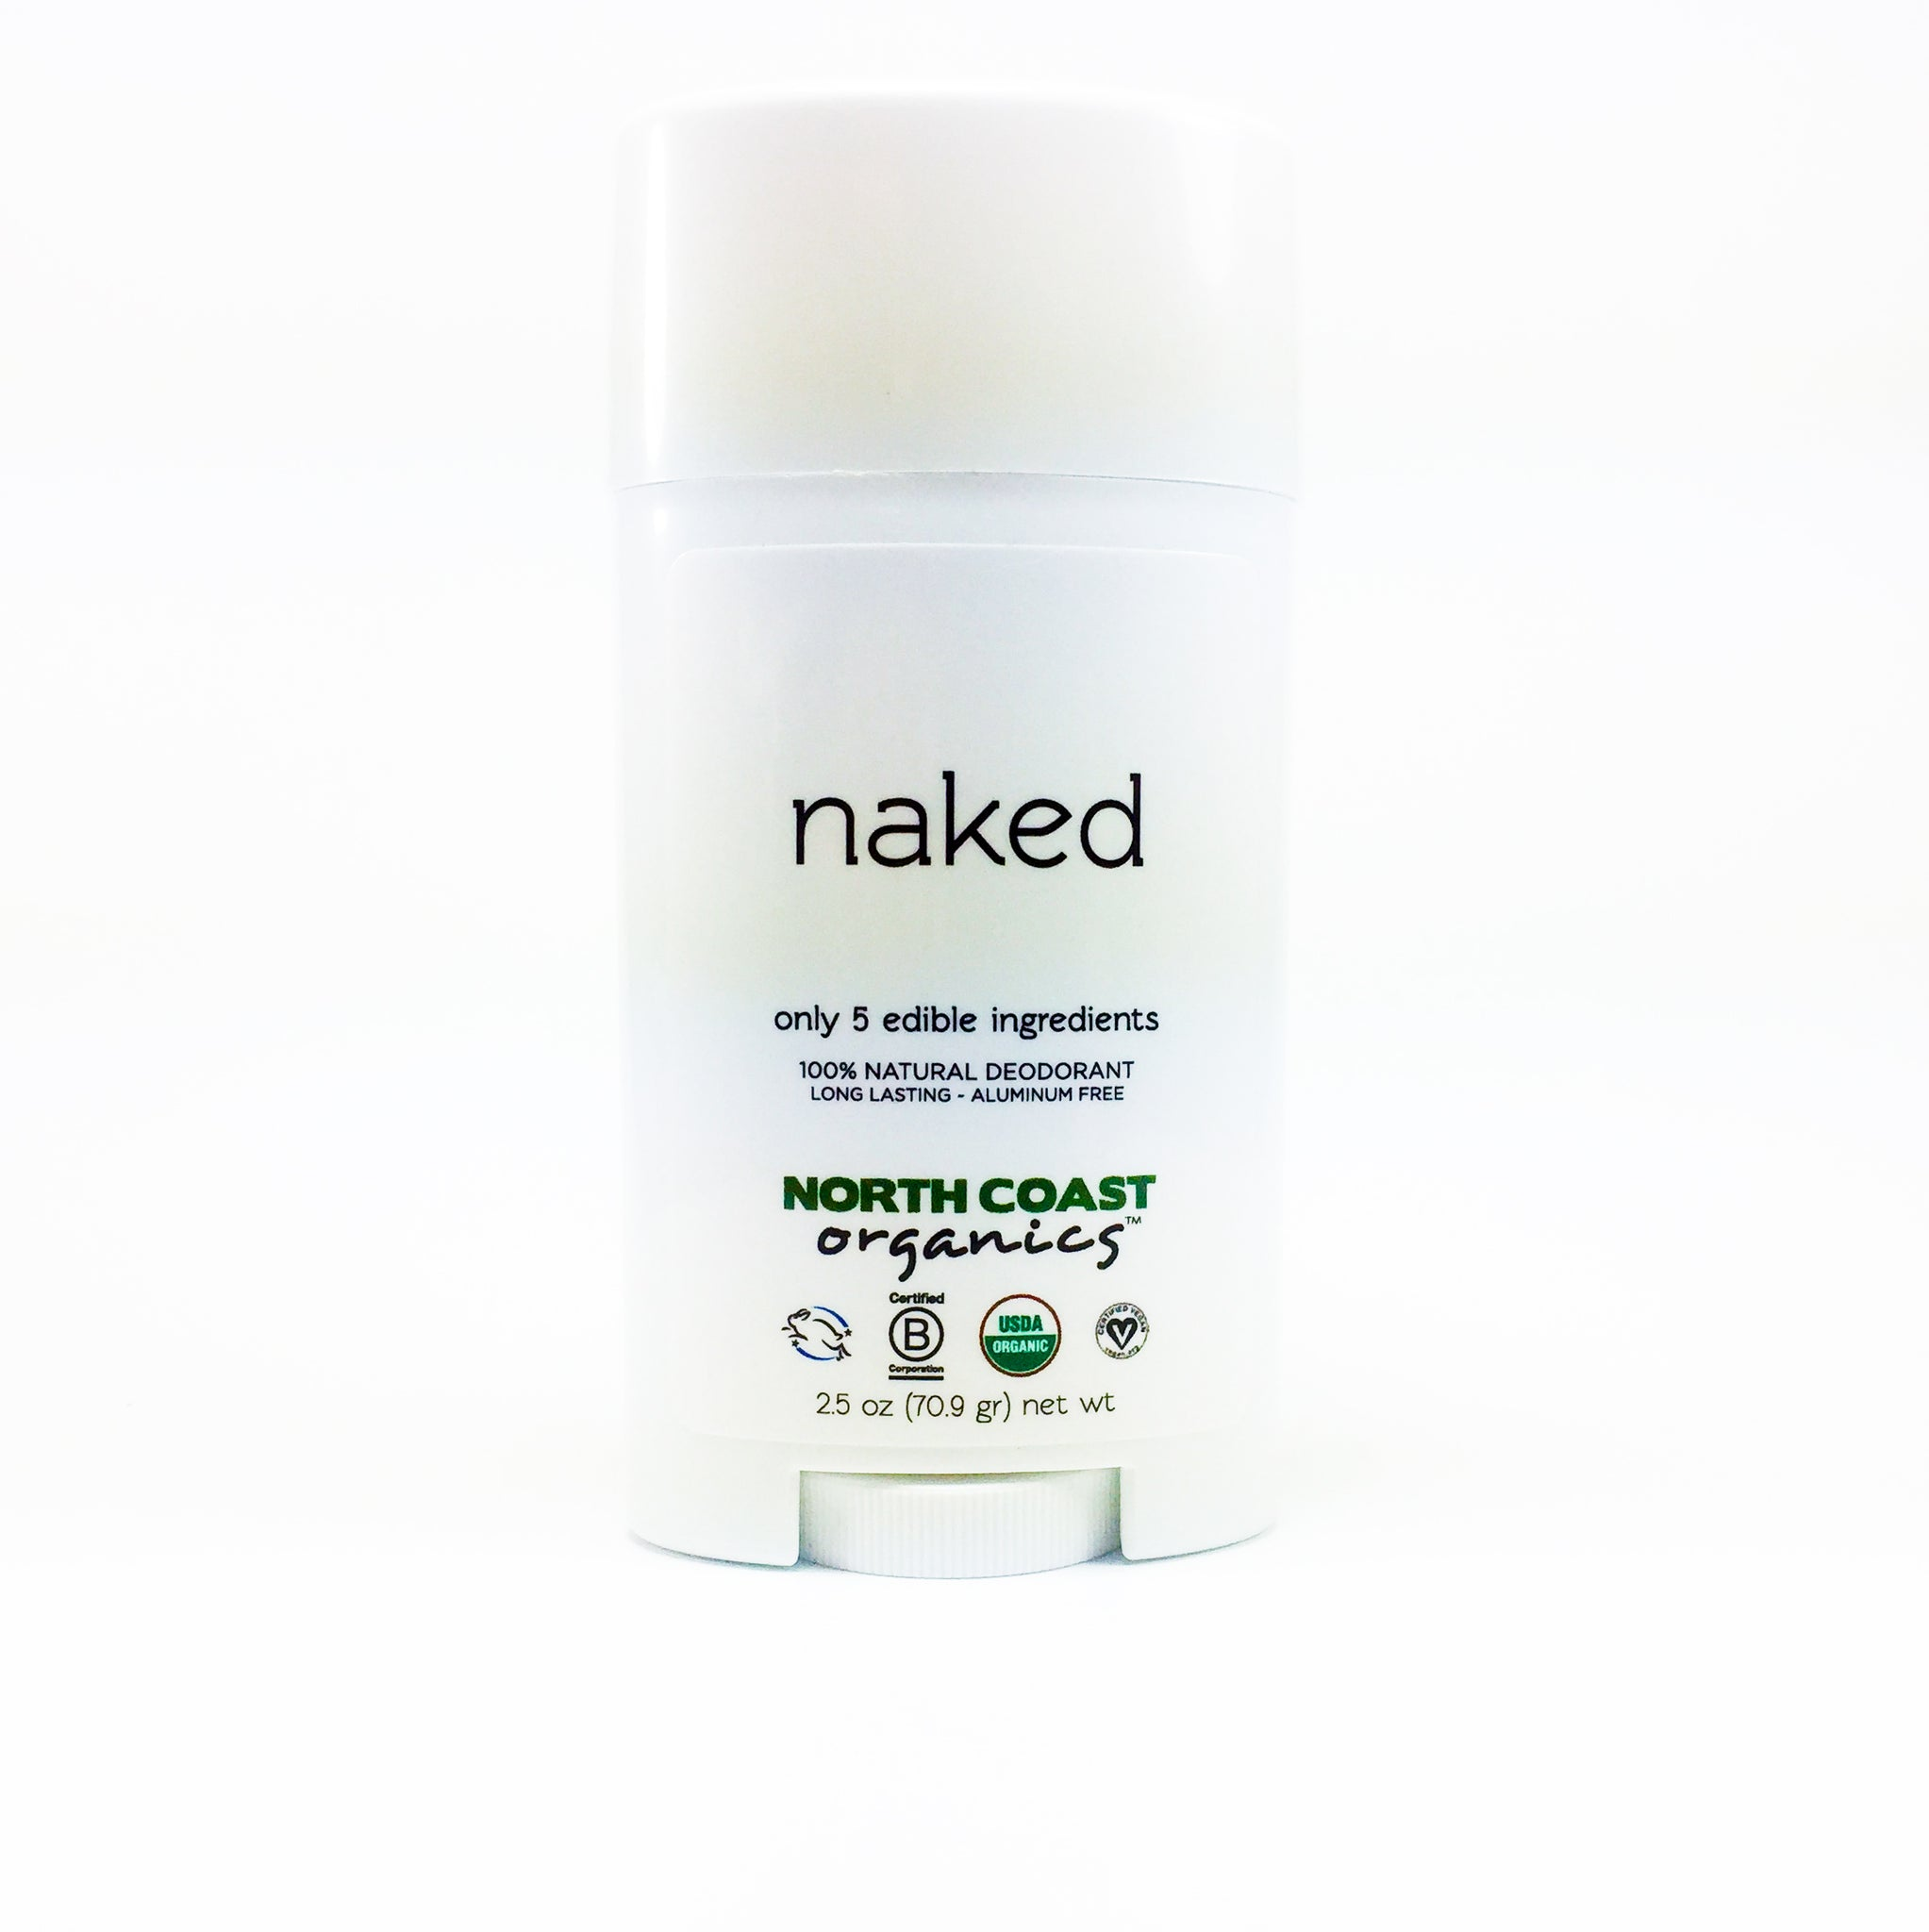 North Coast Organics Certified Organic Deodorant Photo - Naked Front Label